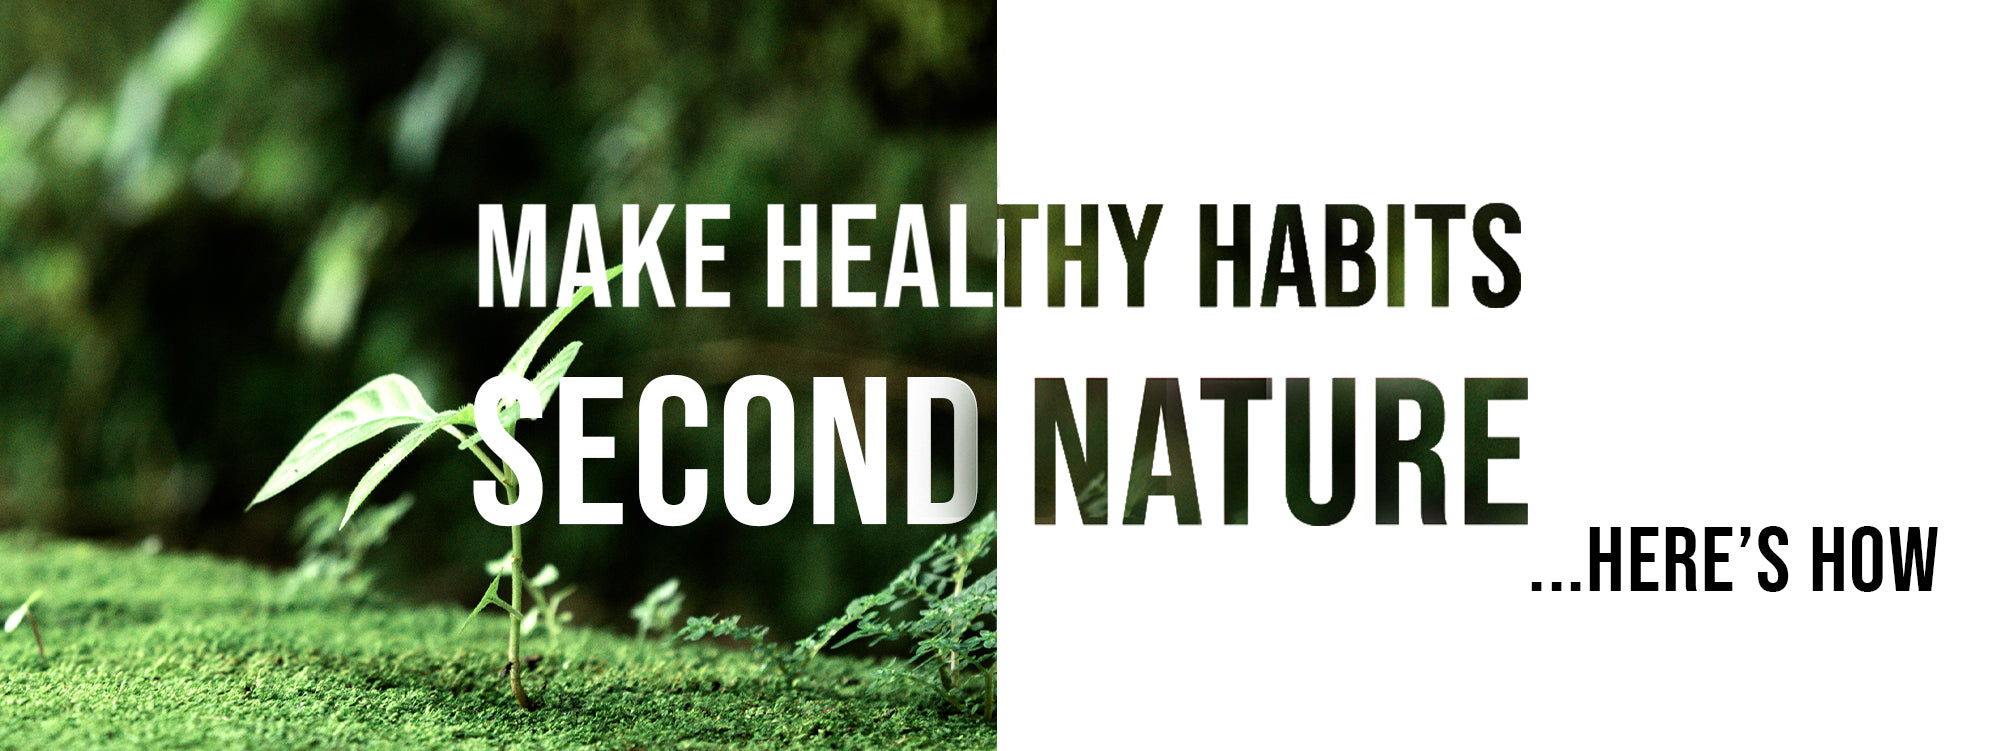 Make Healthy Habits Second Nature – Here's How